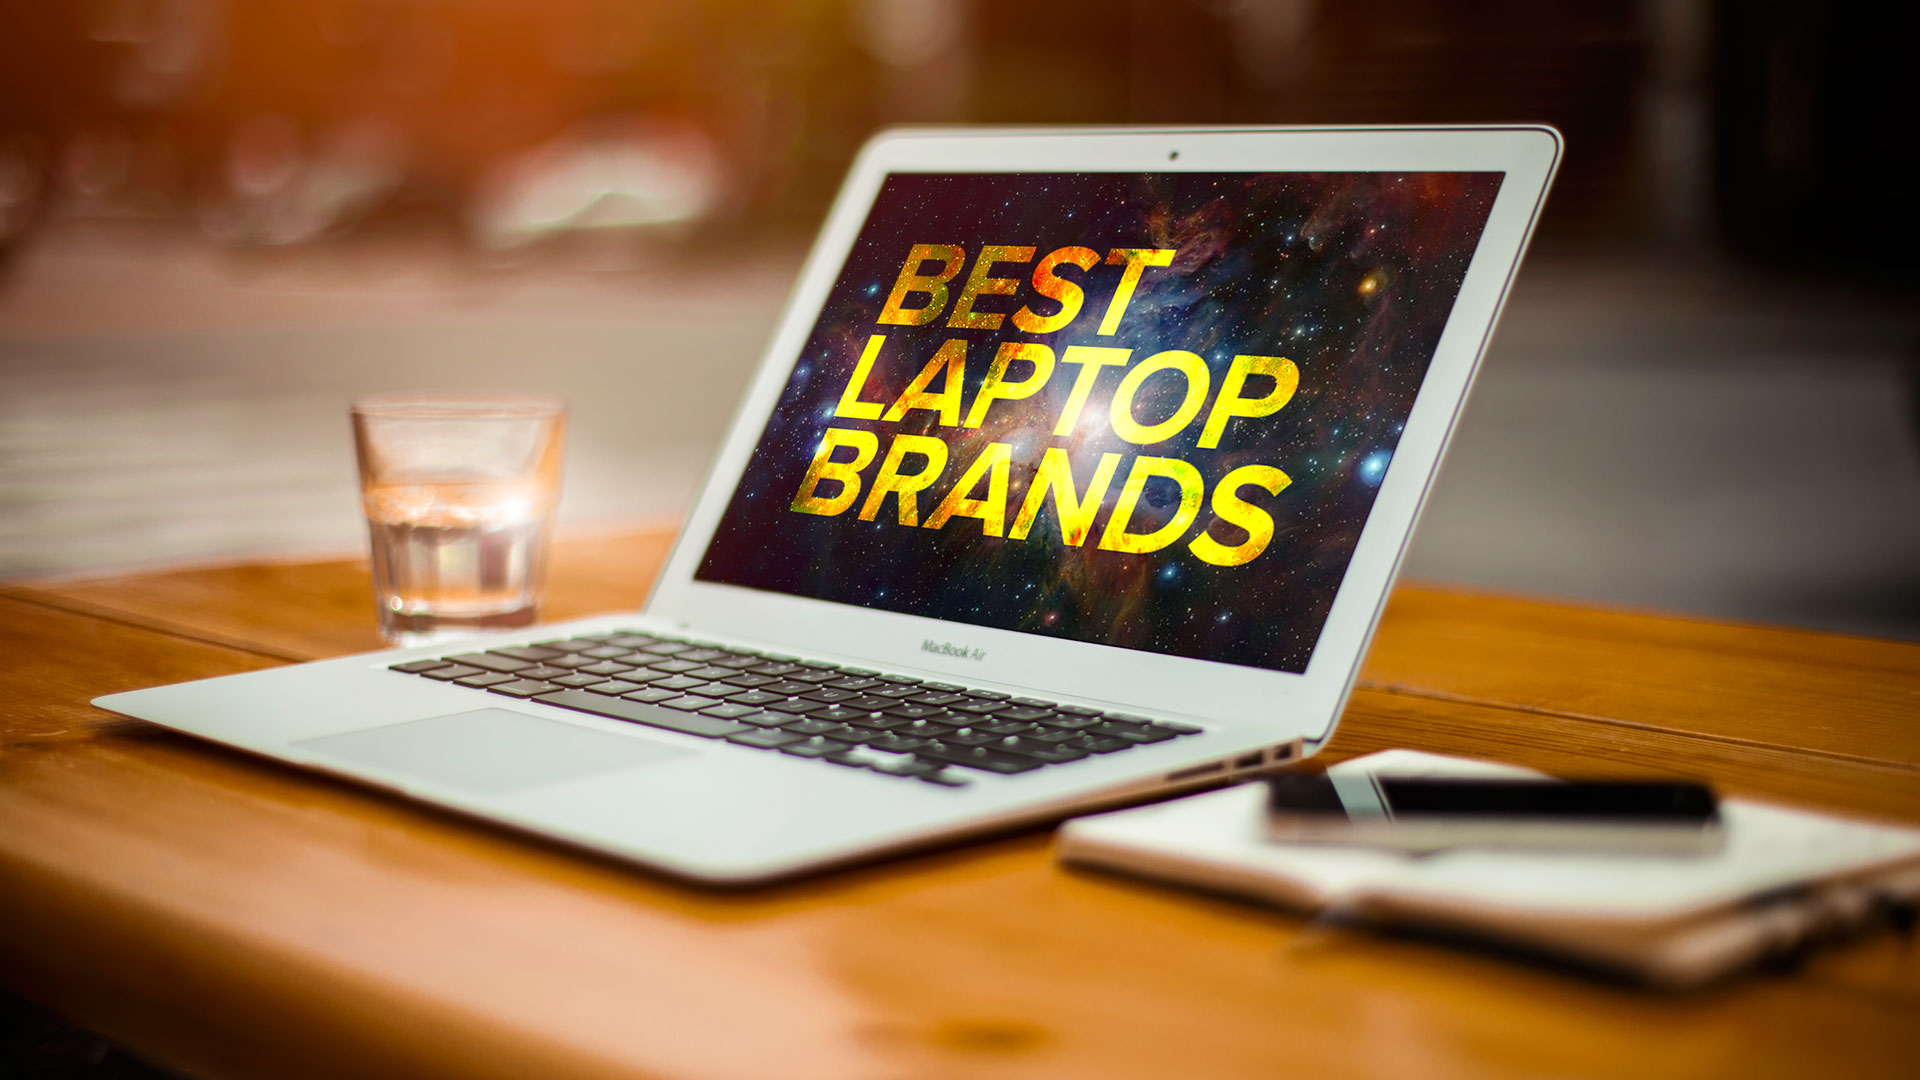 10 Best Laptop Brands 2018: Trusted Models and Reviews